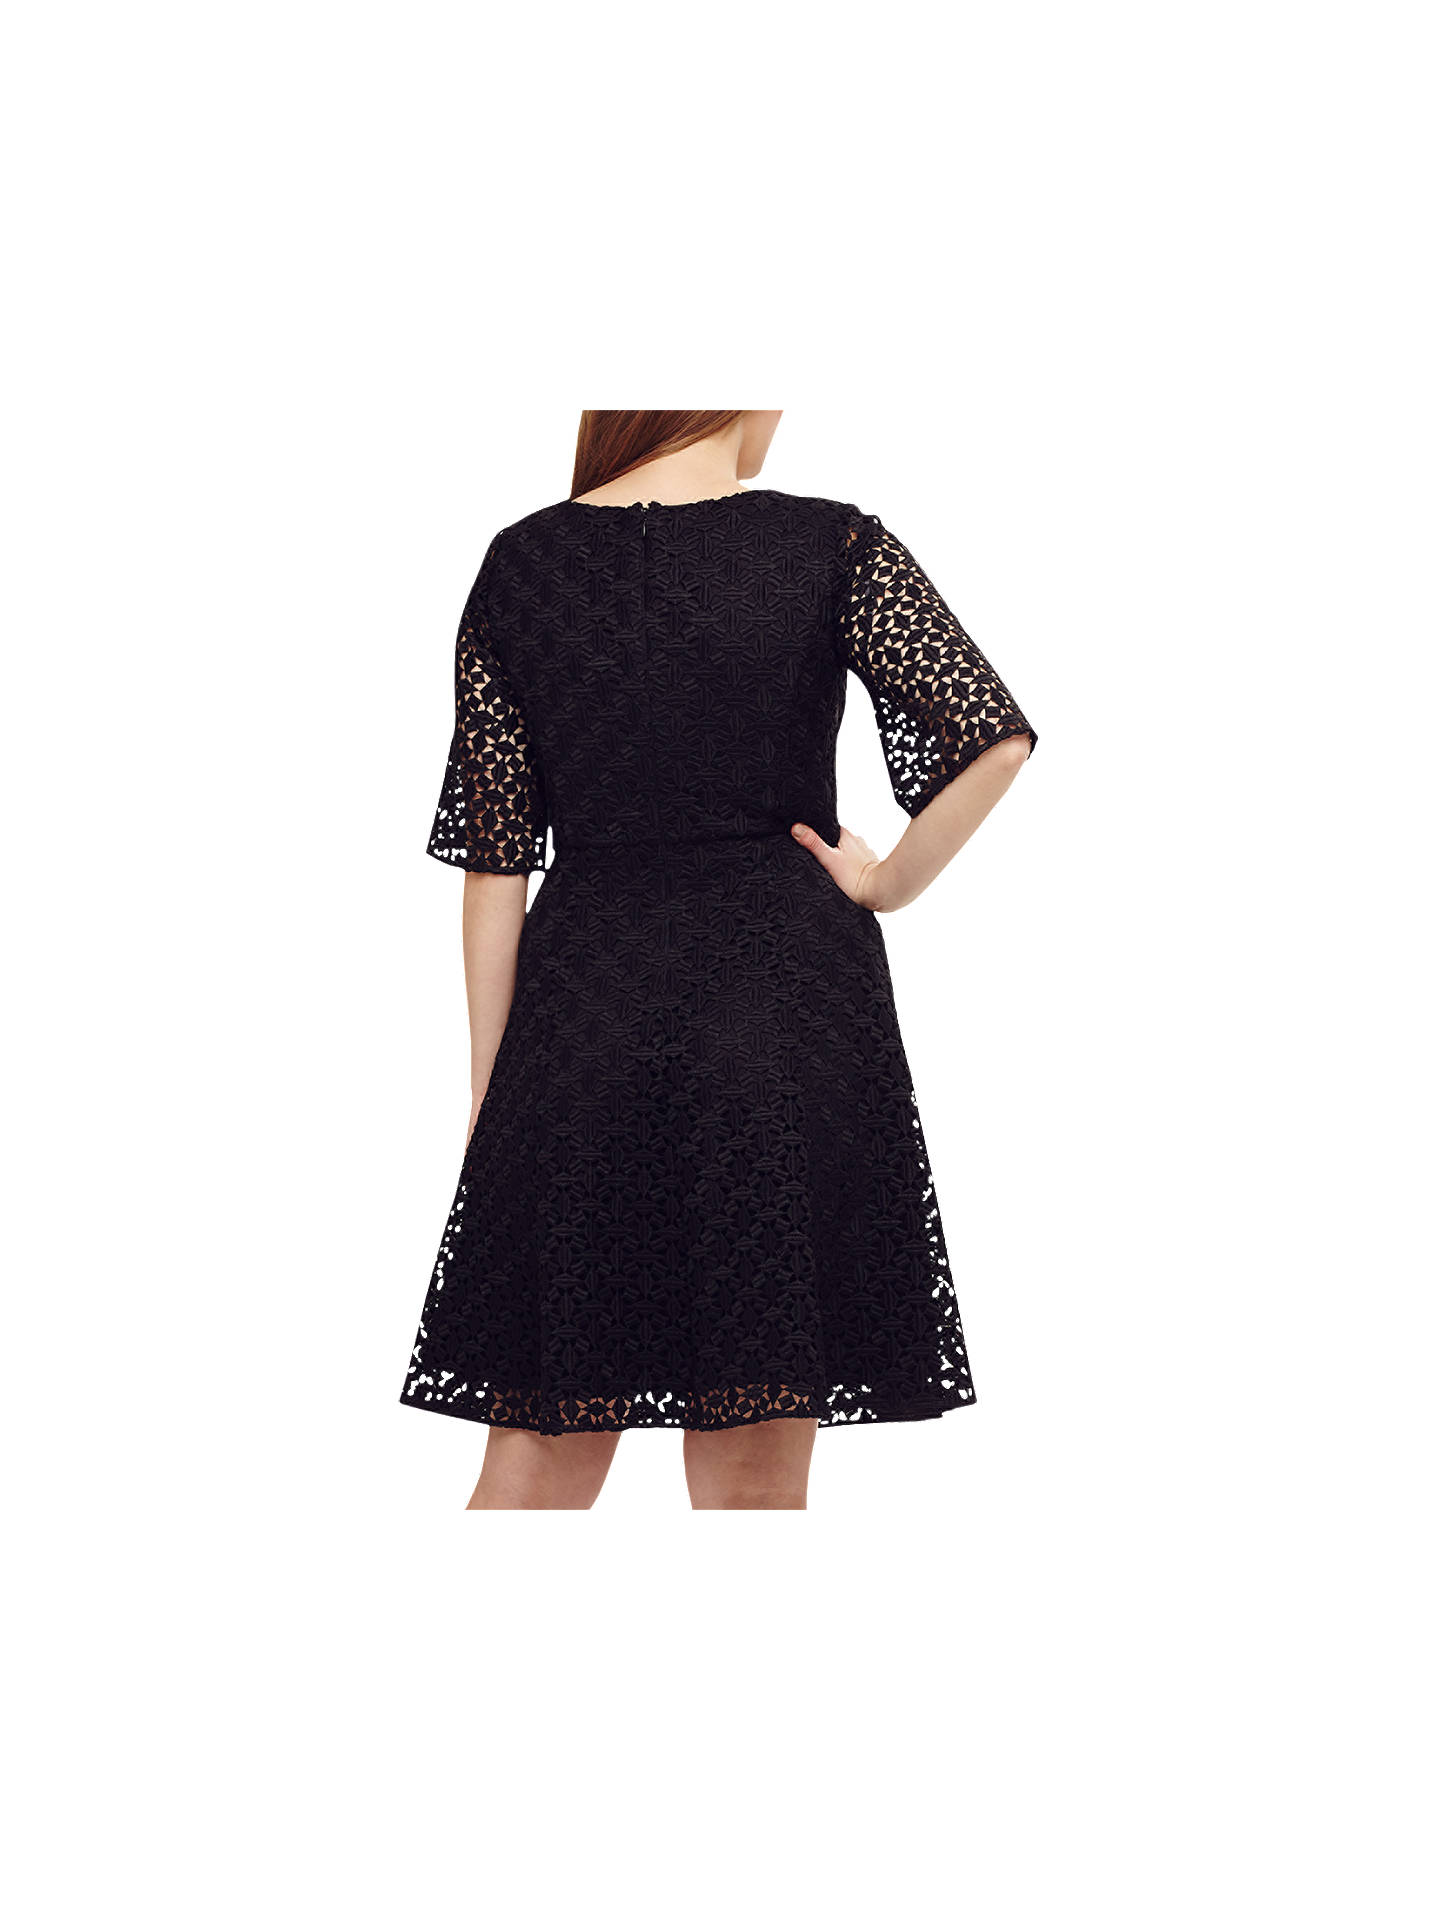 BuyStudio 8 Mary Lace Dress, Black, 16 Online at johnlewis.com